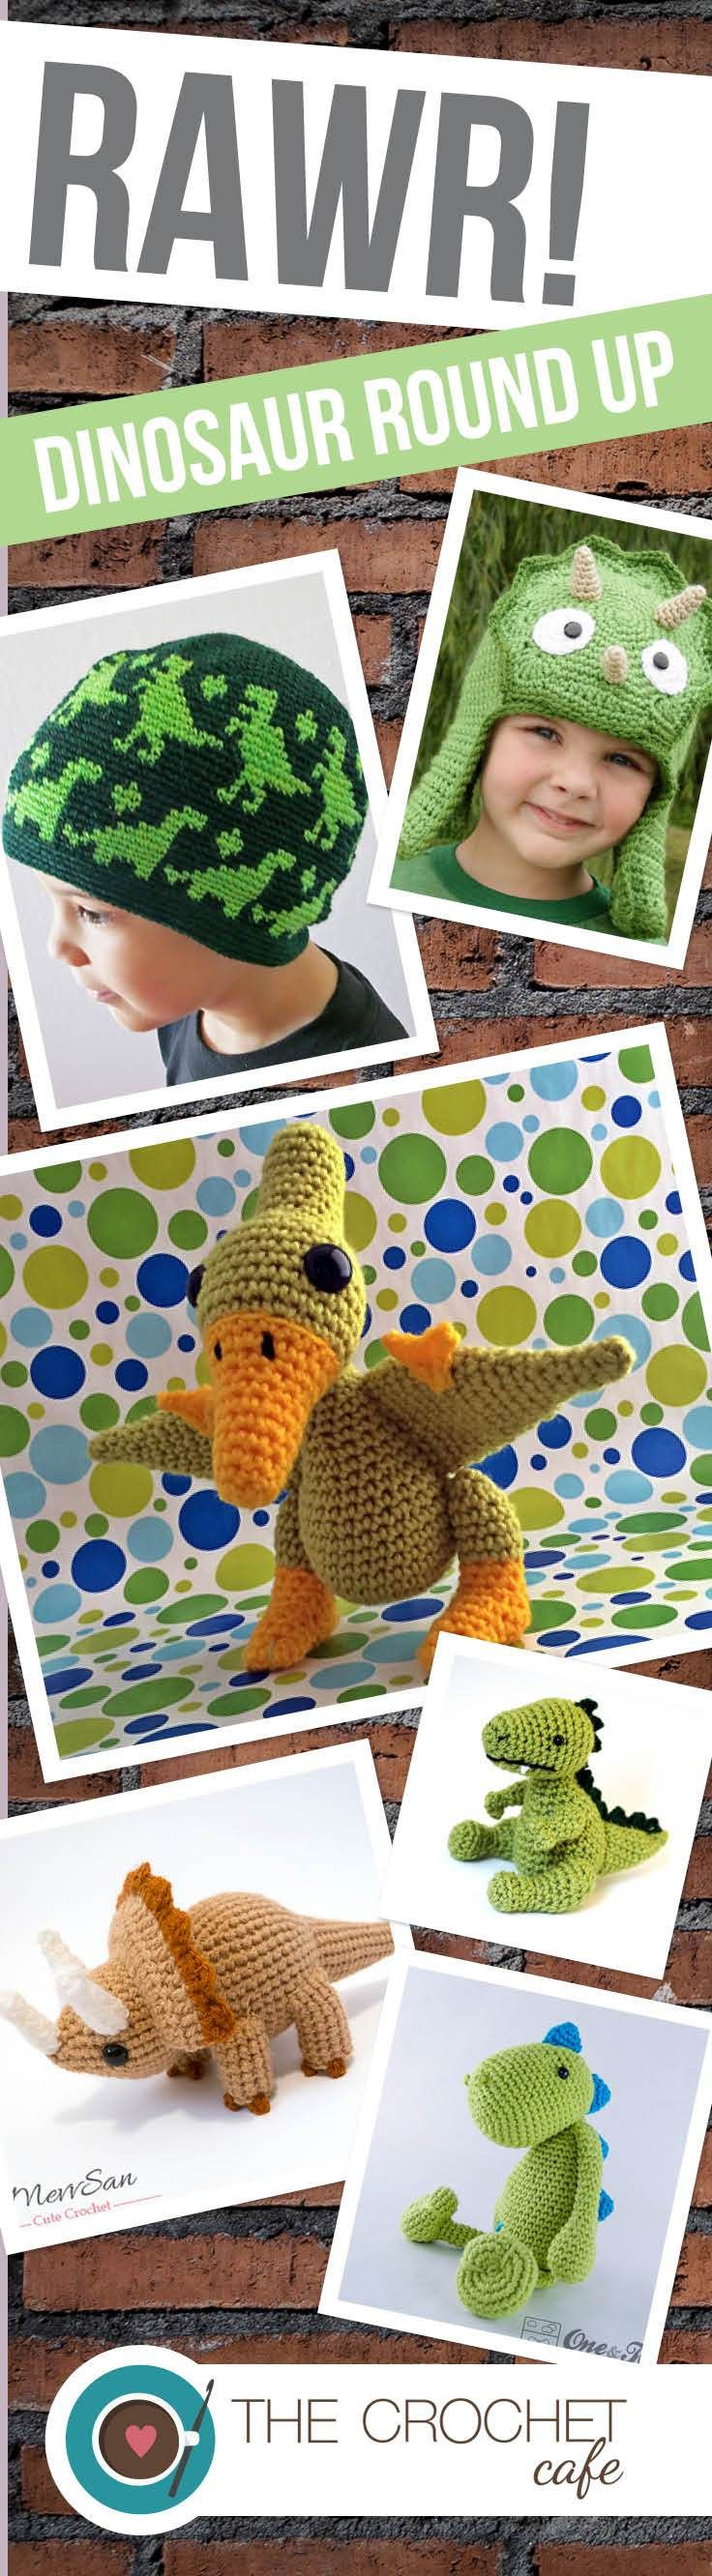 RAWR! The best Dinosaur crochet patterns around! Perfect for little (and big) kids and dino lovers of all ages!